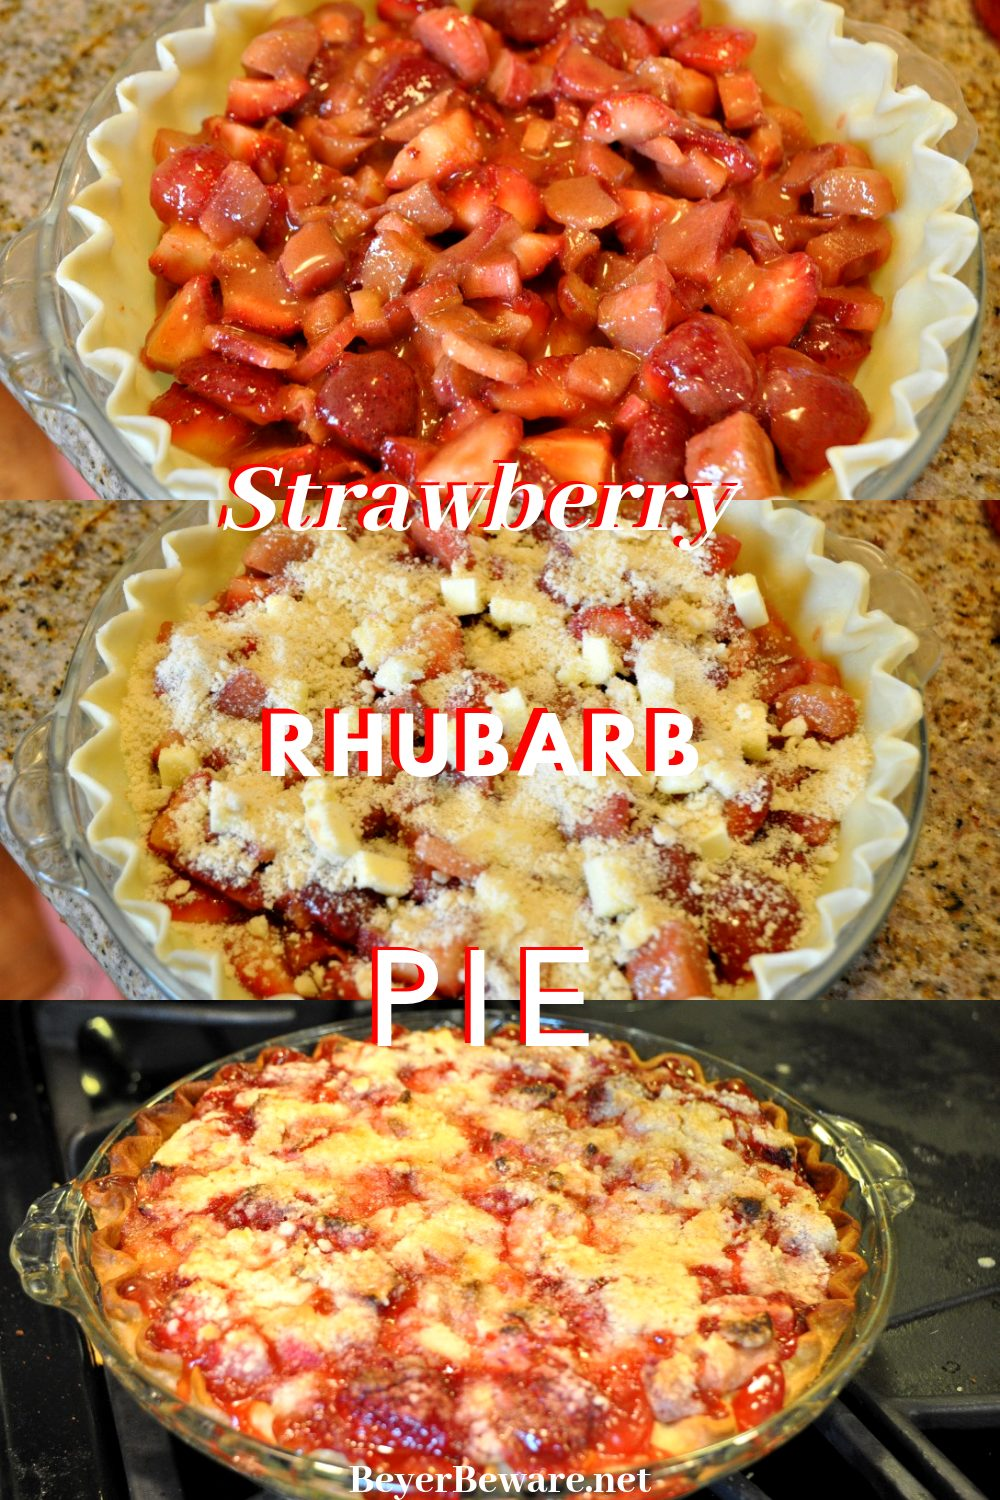 Strawberry Rhubarb Pie with a crumble topping is a simple pie recipe made with a store bought pie crust and all the flavors of spring. Perfect for Easter or mother's day celebrations. #MothersDay #Pie #Strawberry #Rhubarb